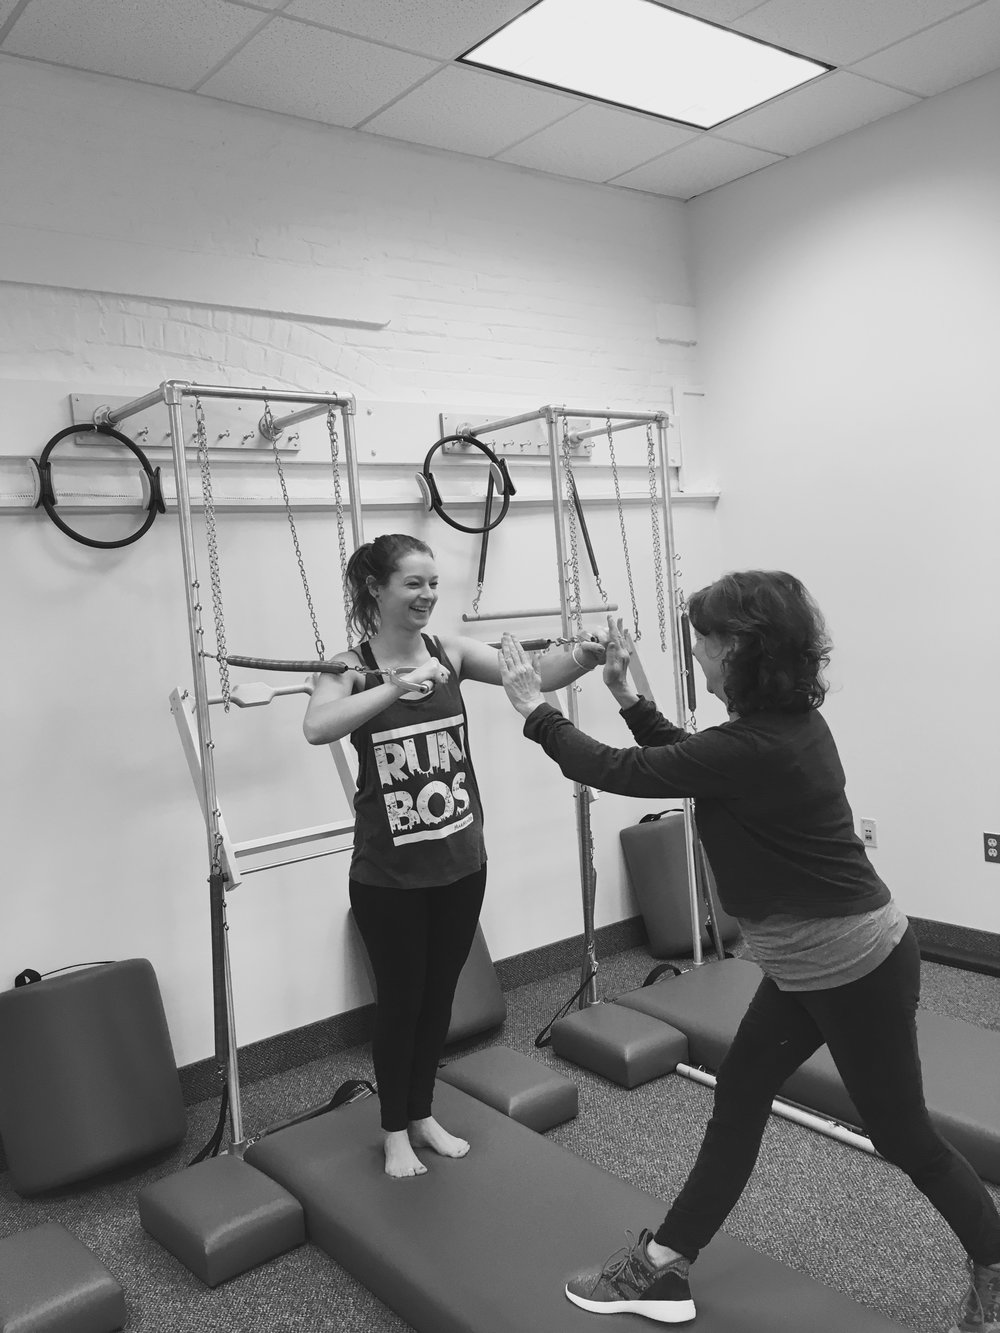 True-Pilates-Boston-Private-Session.jpg